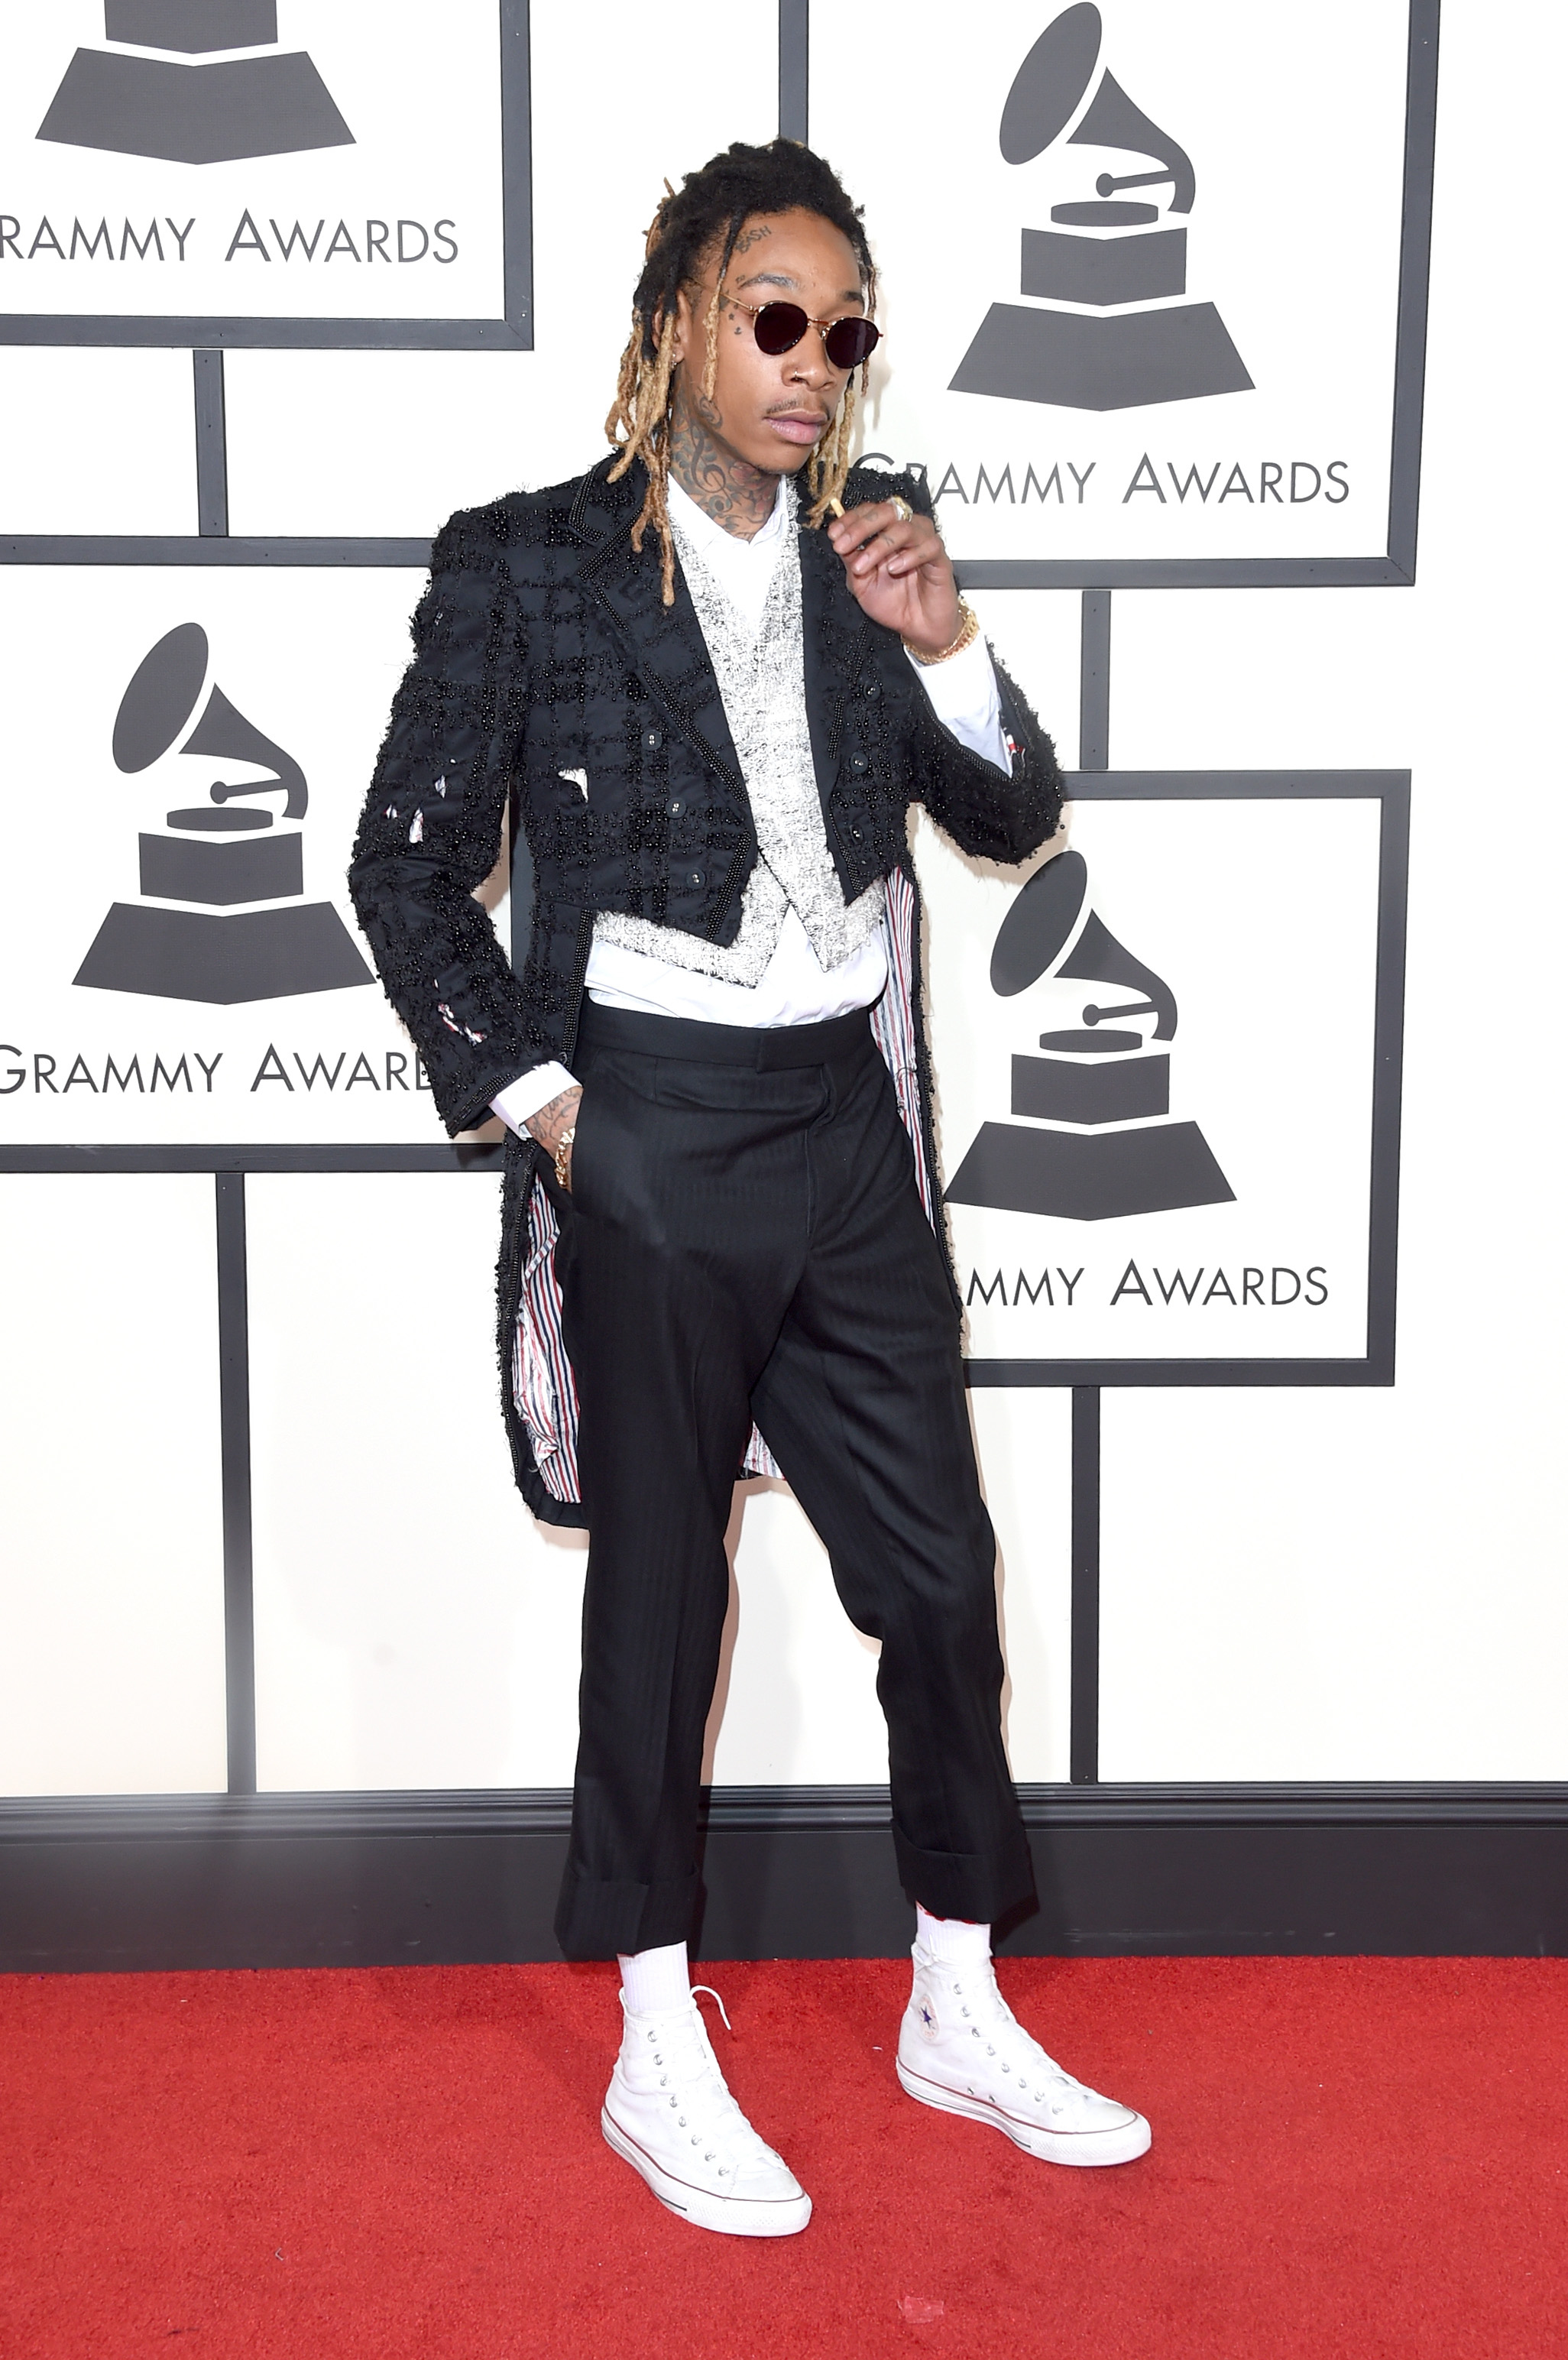 Wiz Khalifa attends the 58th GRAMMY Awards at Staples Center on Feb. 15, 2016 in Los Angeles.